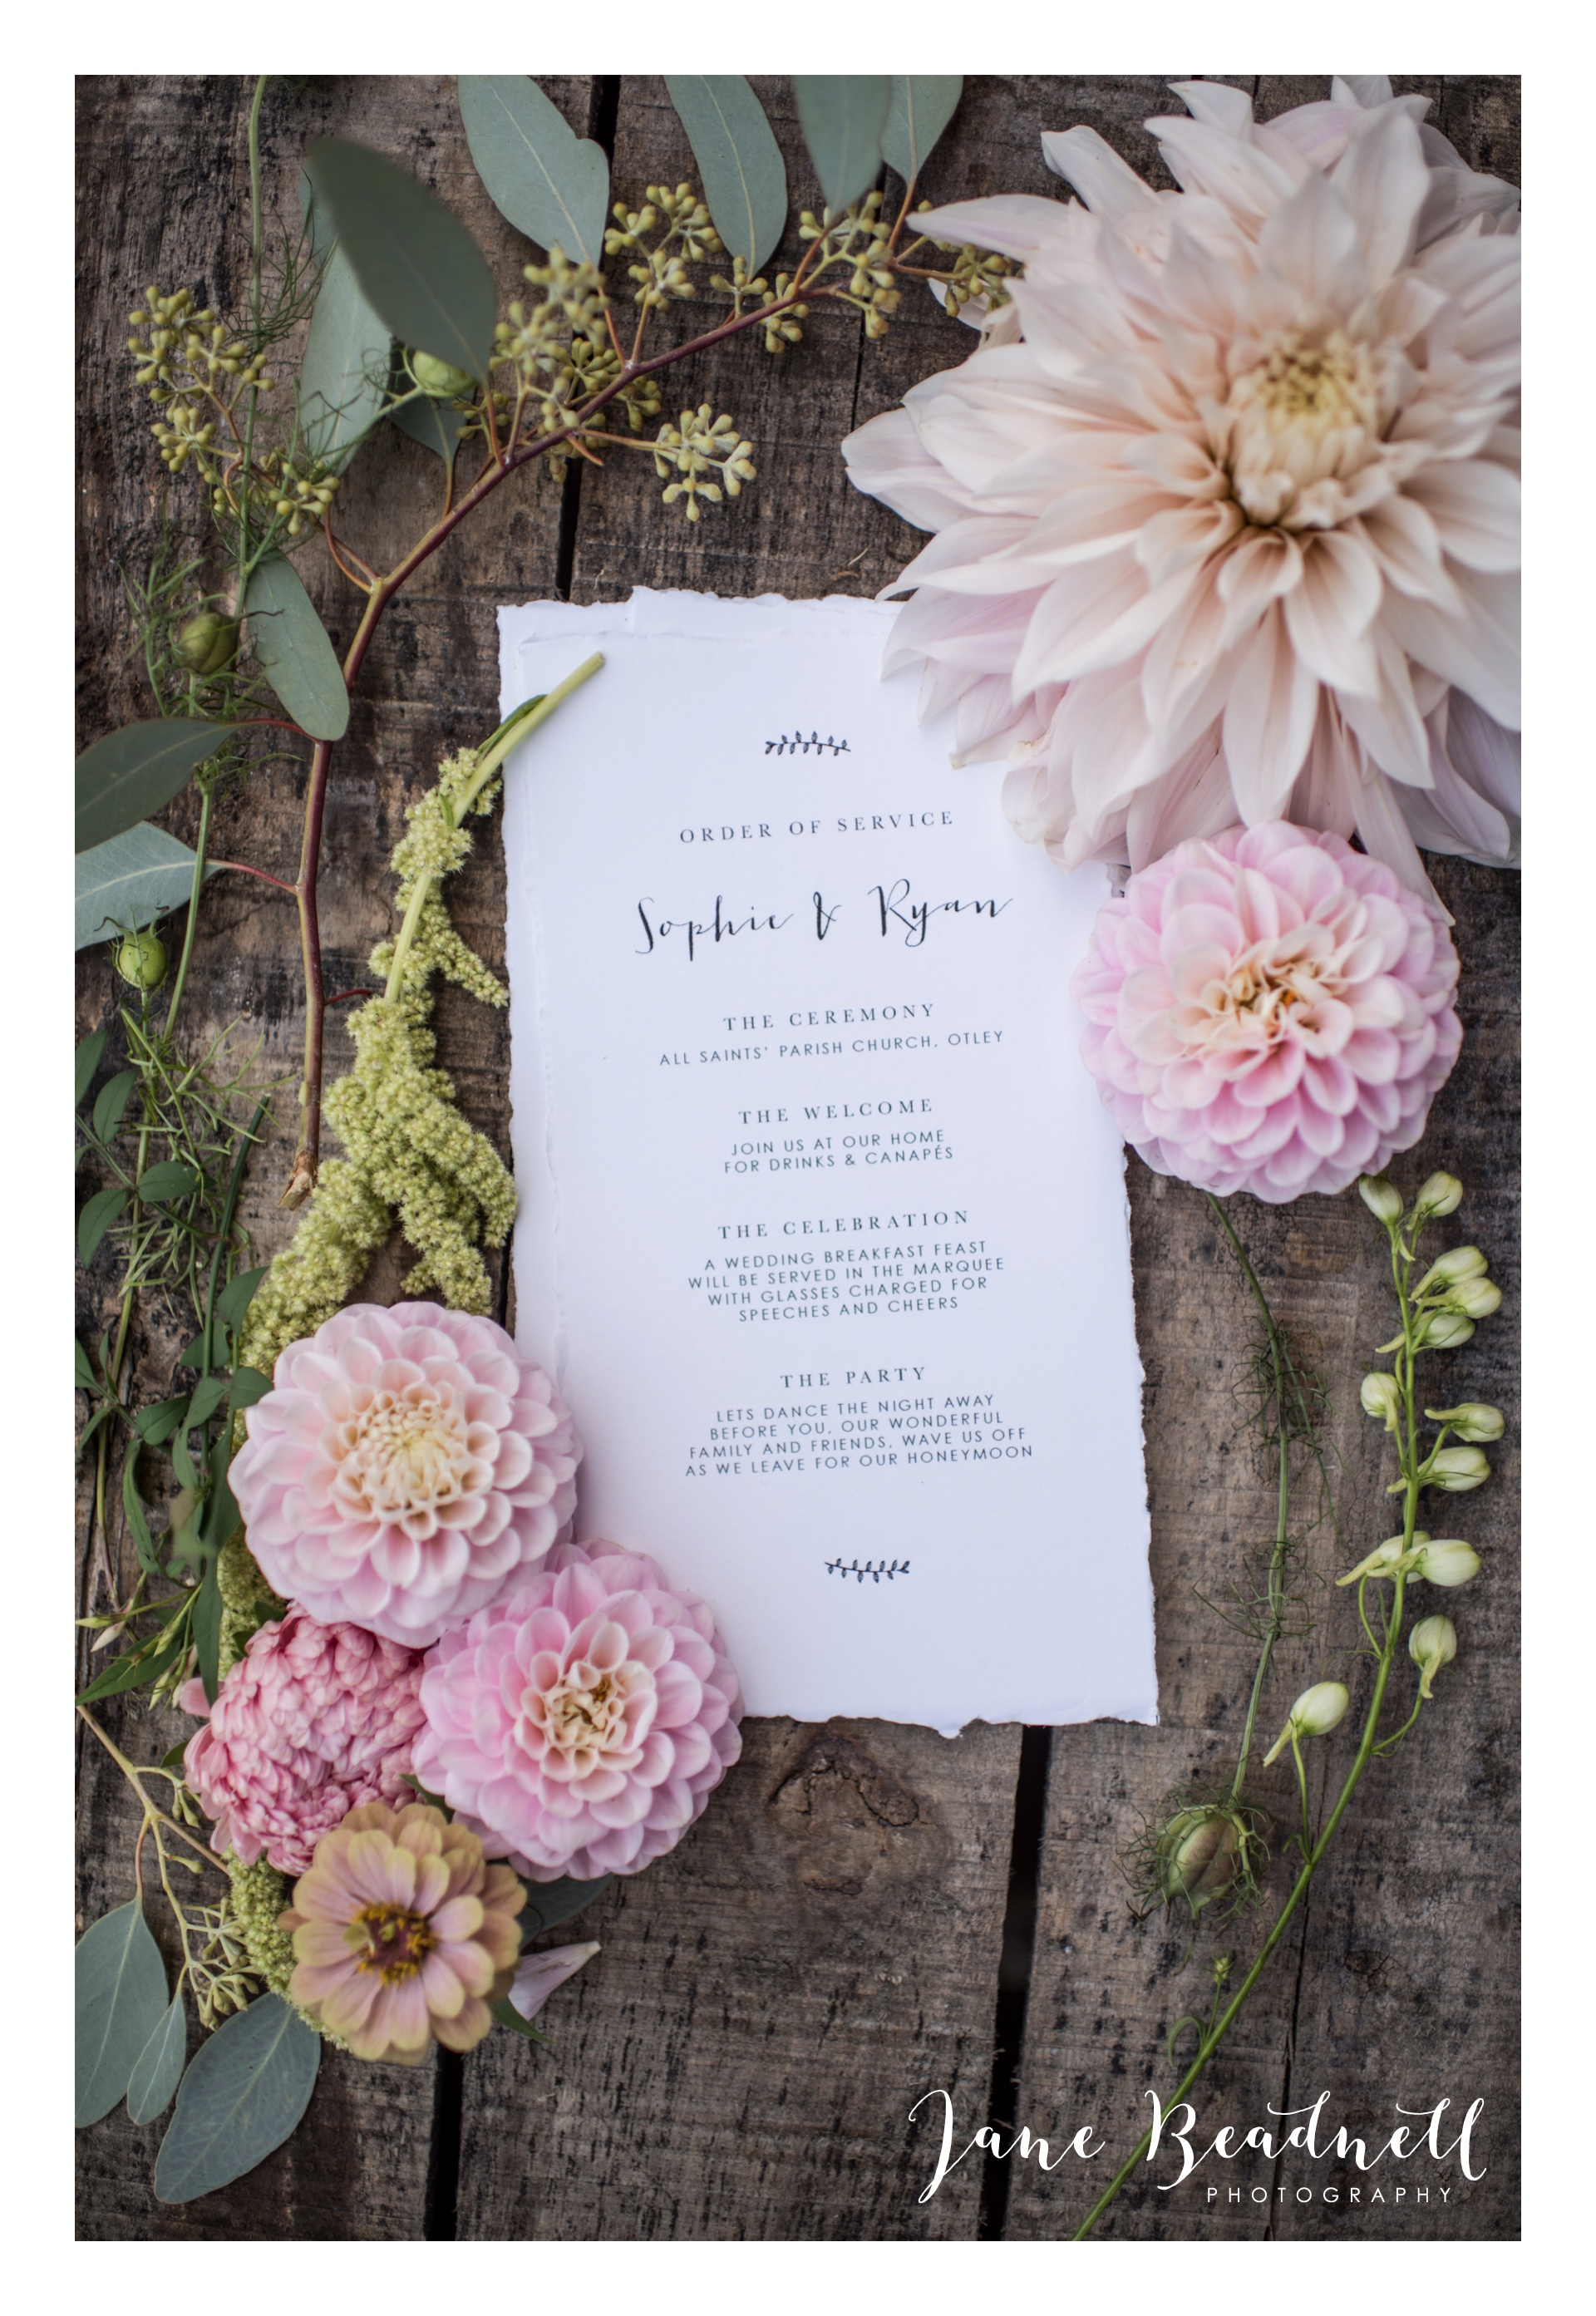 yorkshire-fine-art-wedding-photographer-jane-beadnell-photography-with-leafy-couture-wedding-flowers_0032